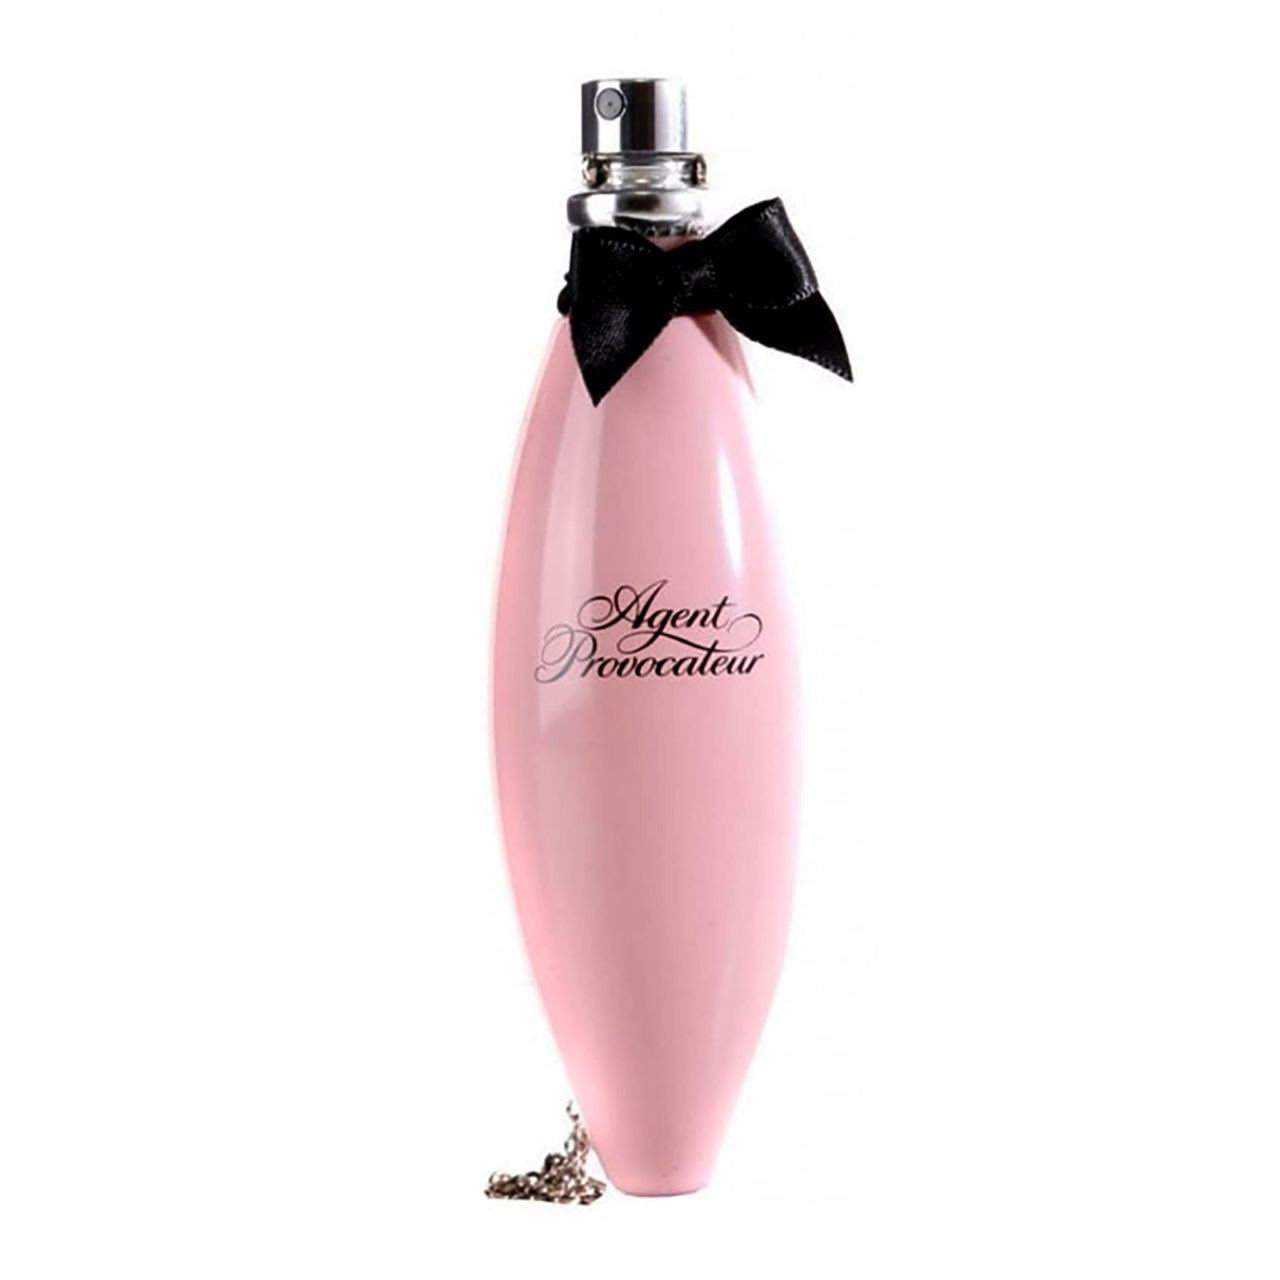 ... Agent Provocateur for Women EDP Purse Spray 25ml. Image 1 841bd94bd